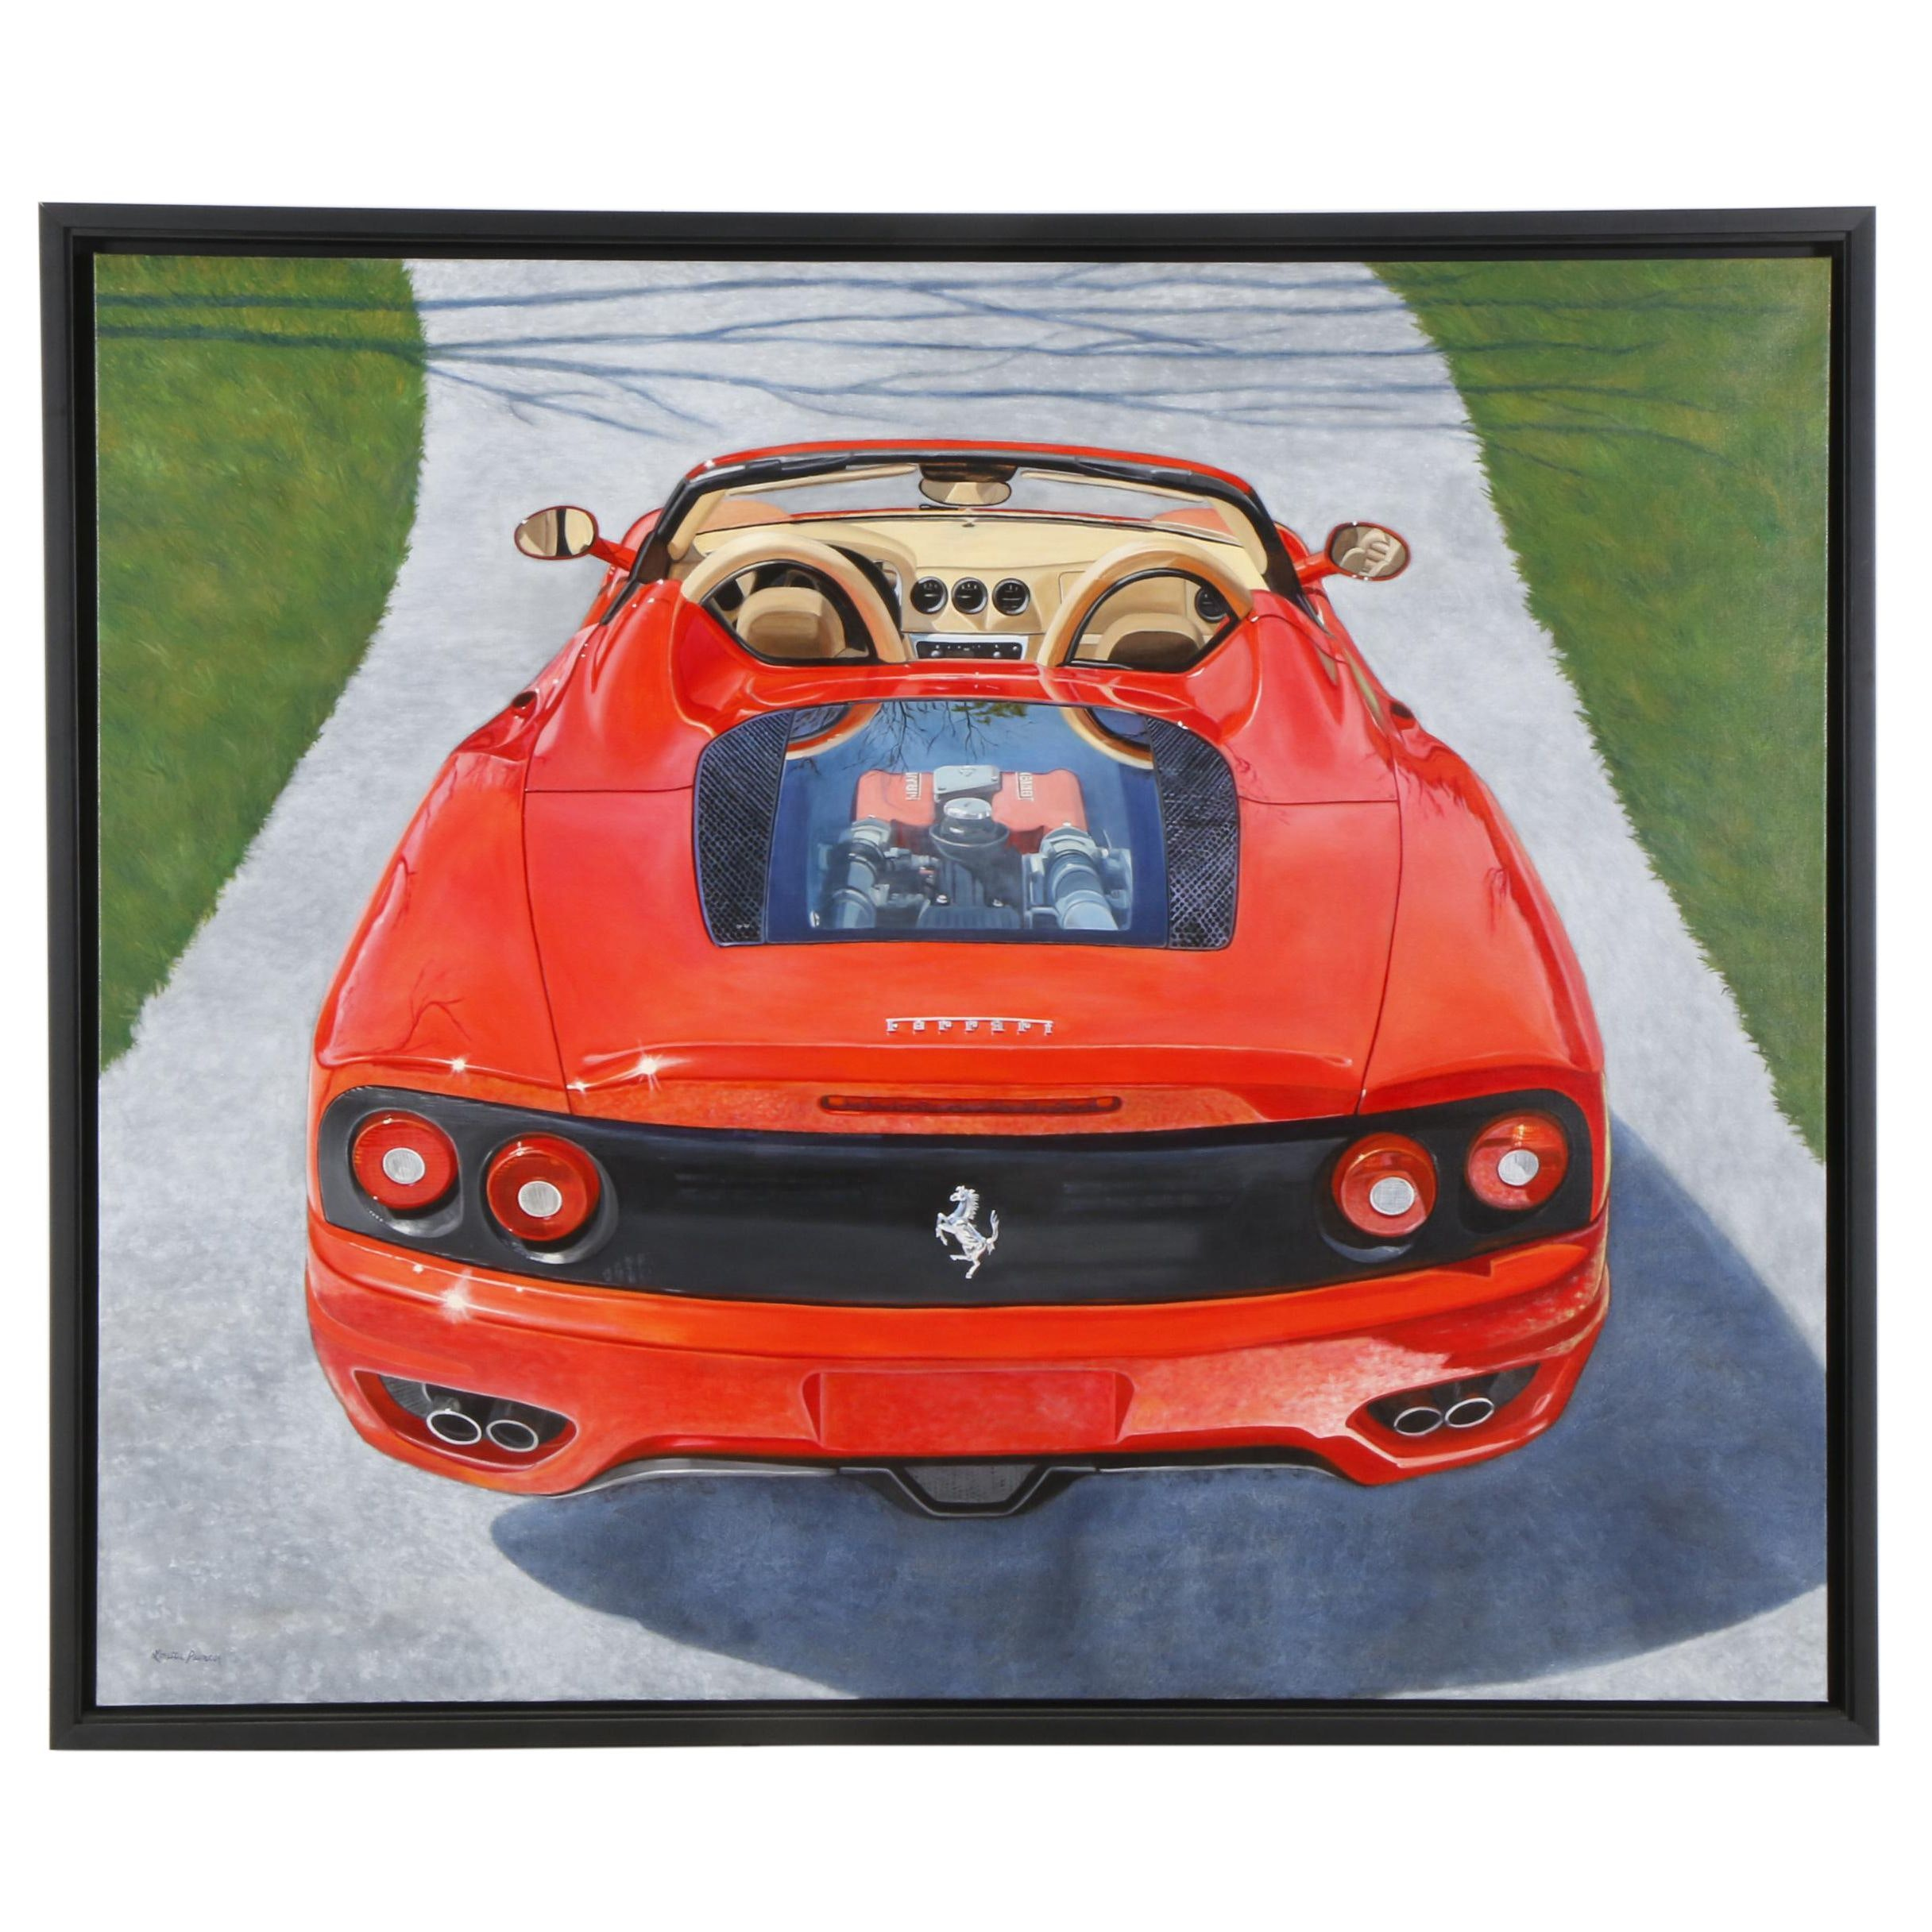 Loretta Puncer Mural-Sized Ferrari Portrait Oil Painting